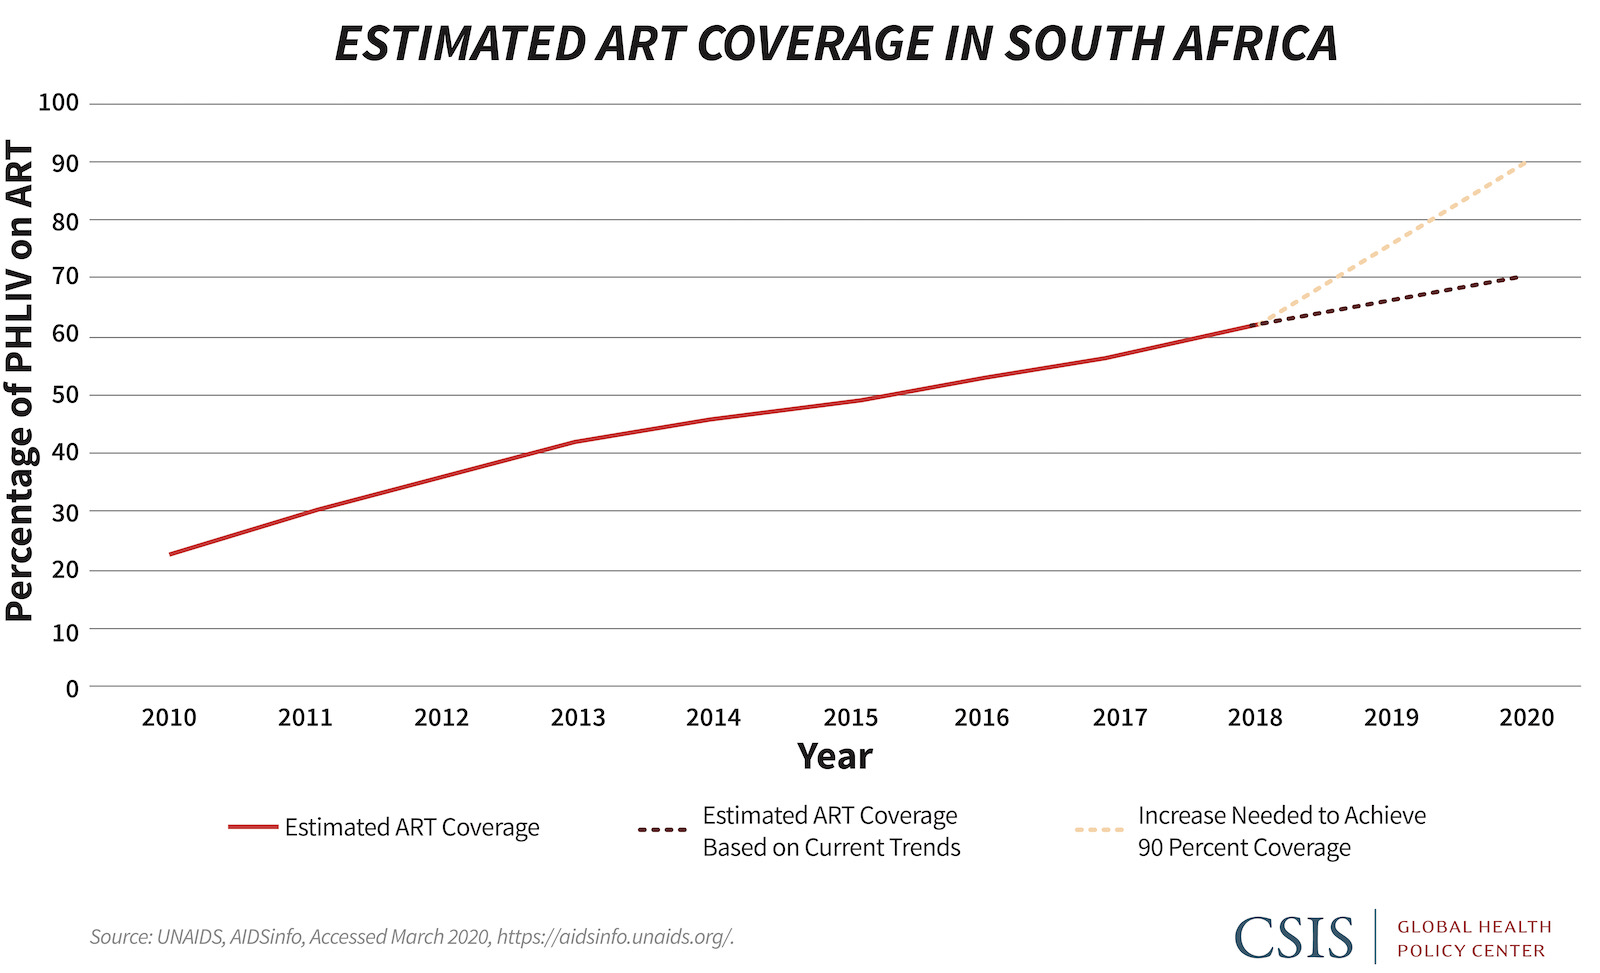 Line graph showing estimated ART coverage in South Africa